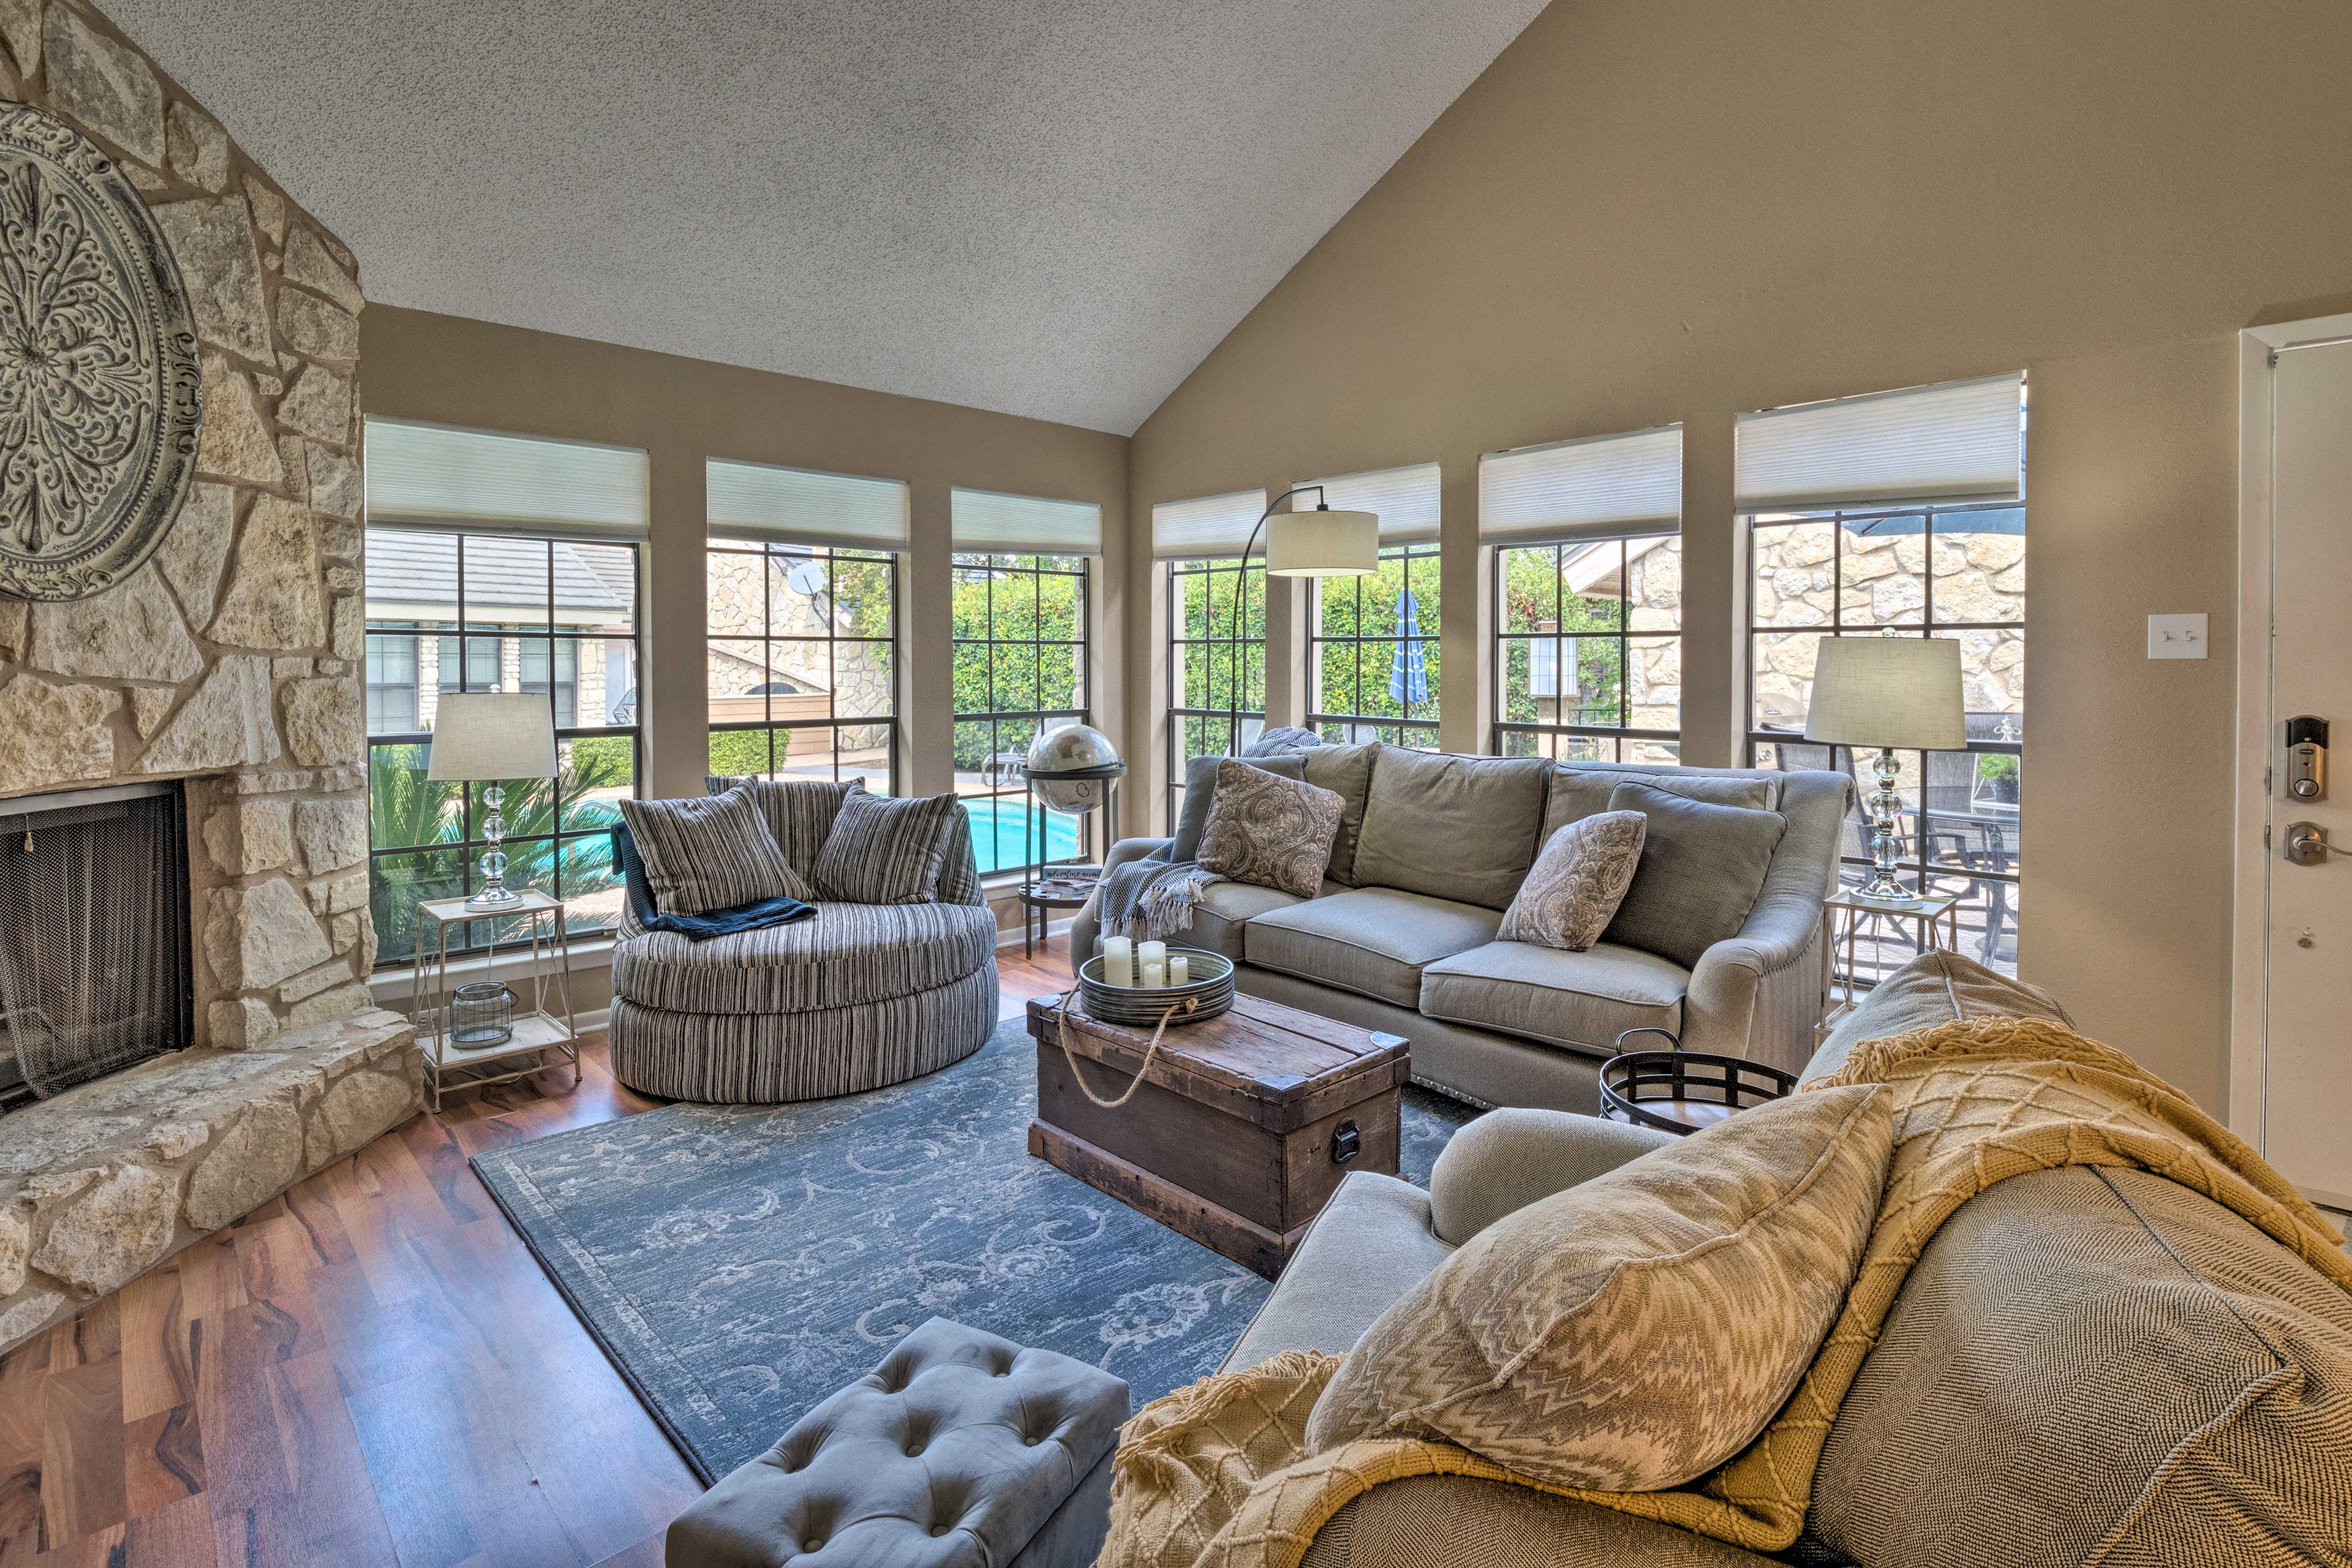 Let the natural light flow into the living room.